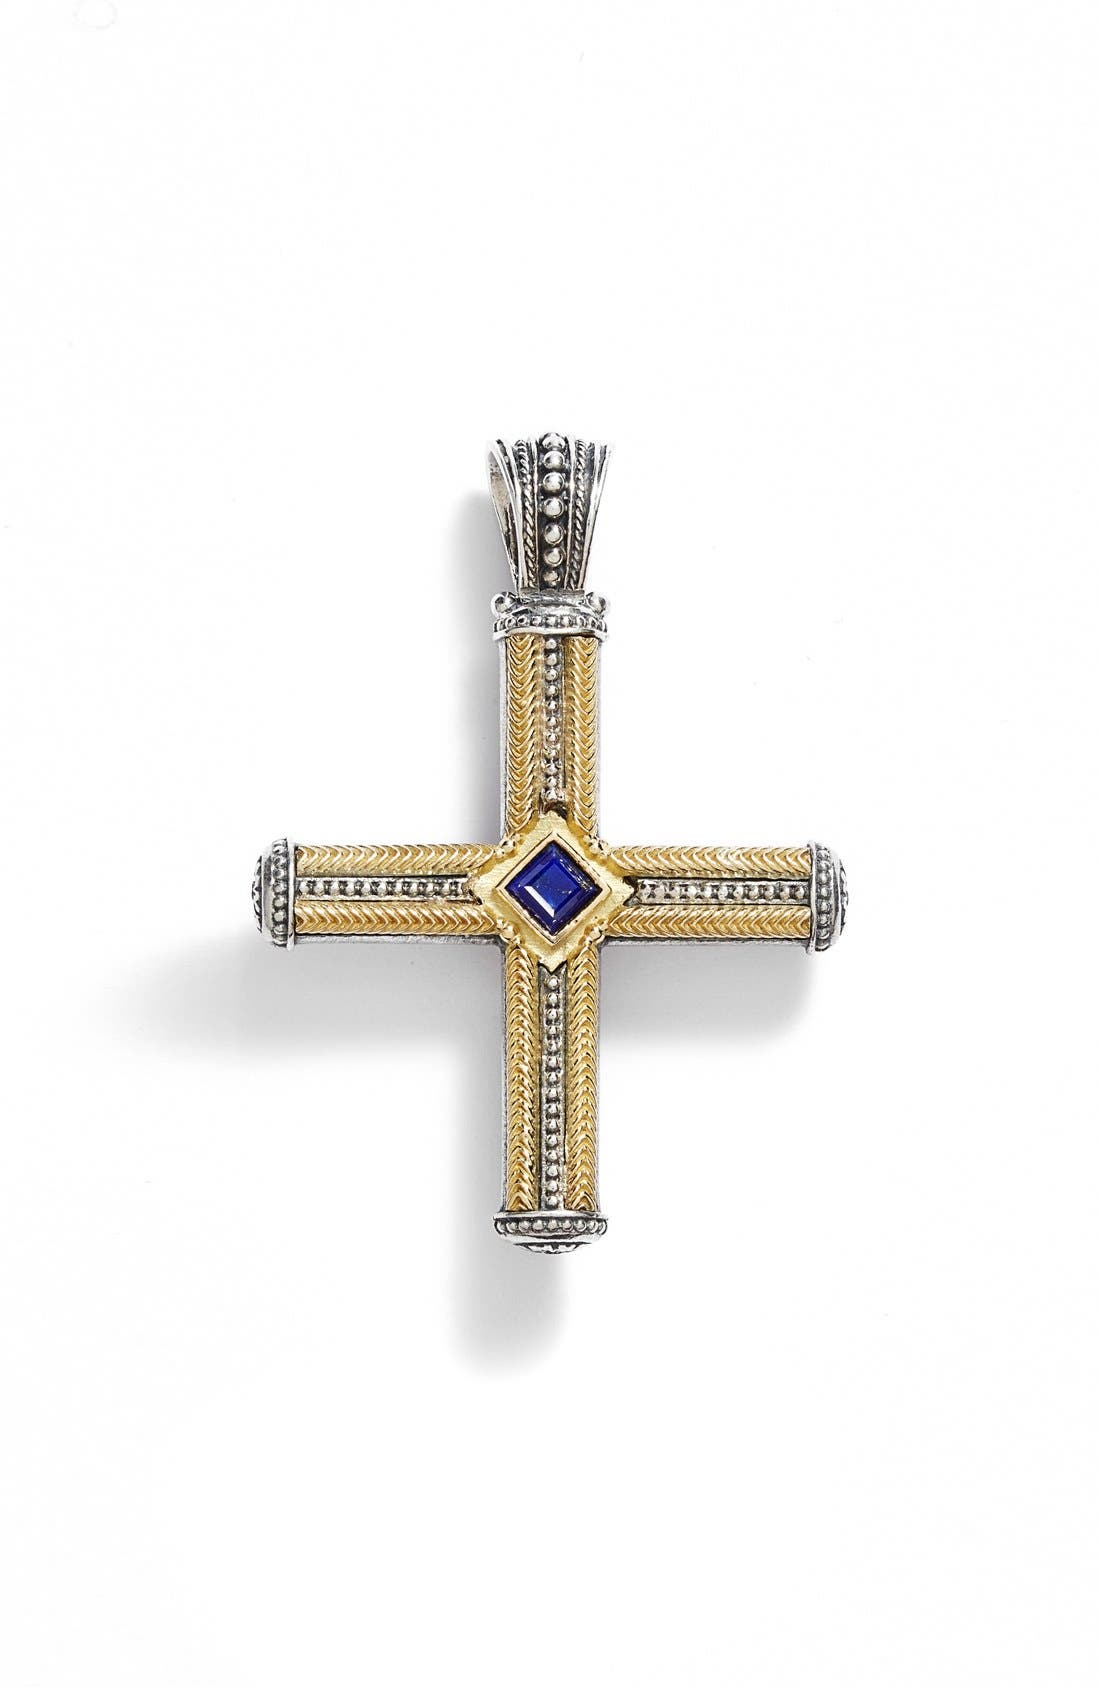 'Orpheus' Semiprecious Stone Cross Pendant,                             Main thumbnail 1, color,                             SILVER/ GOLD/ LAPIS